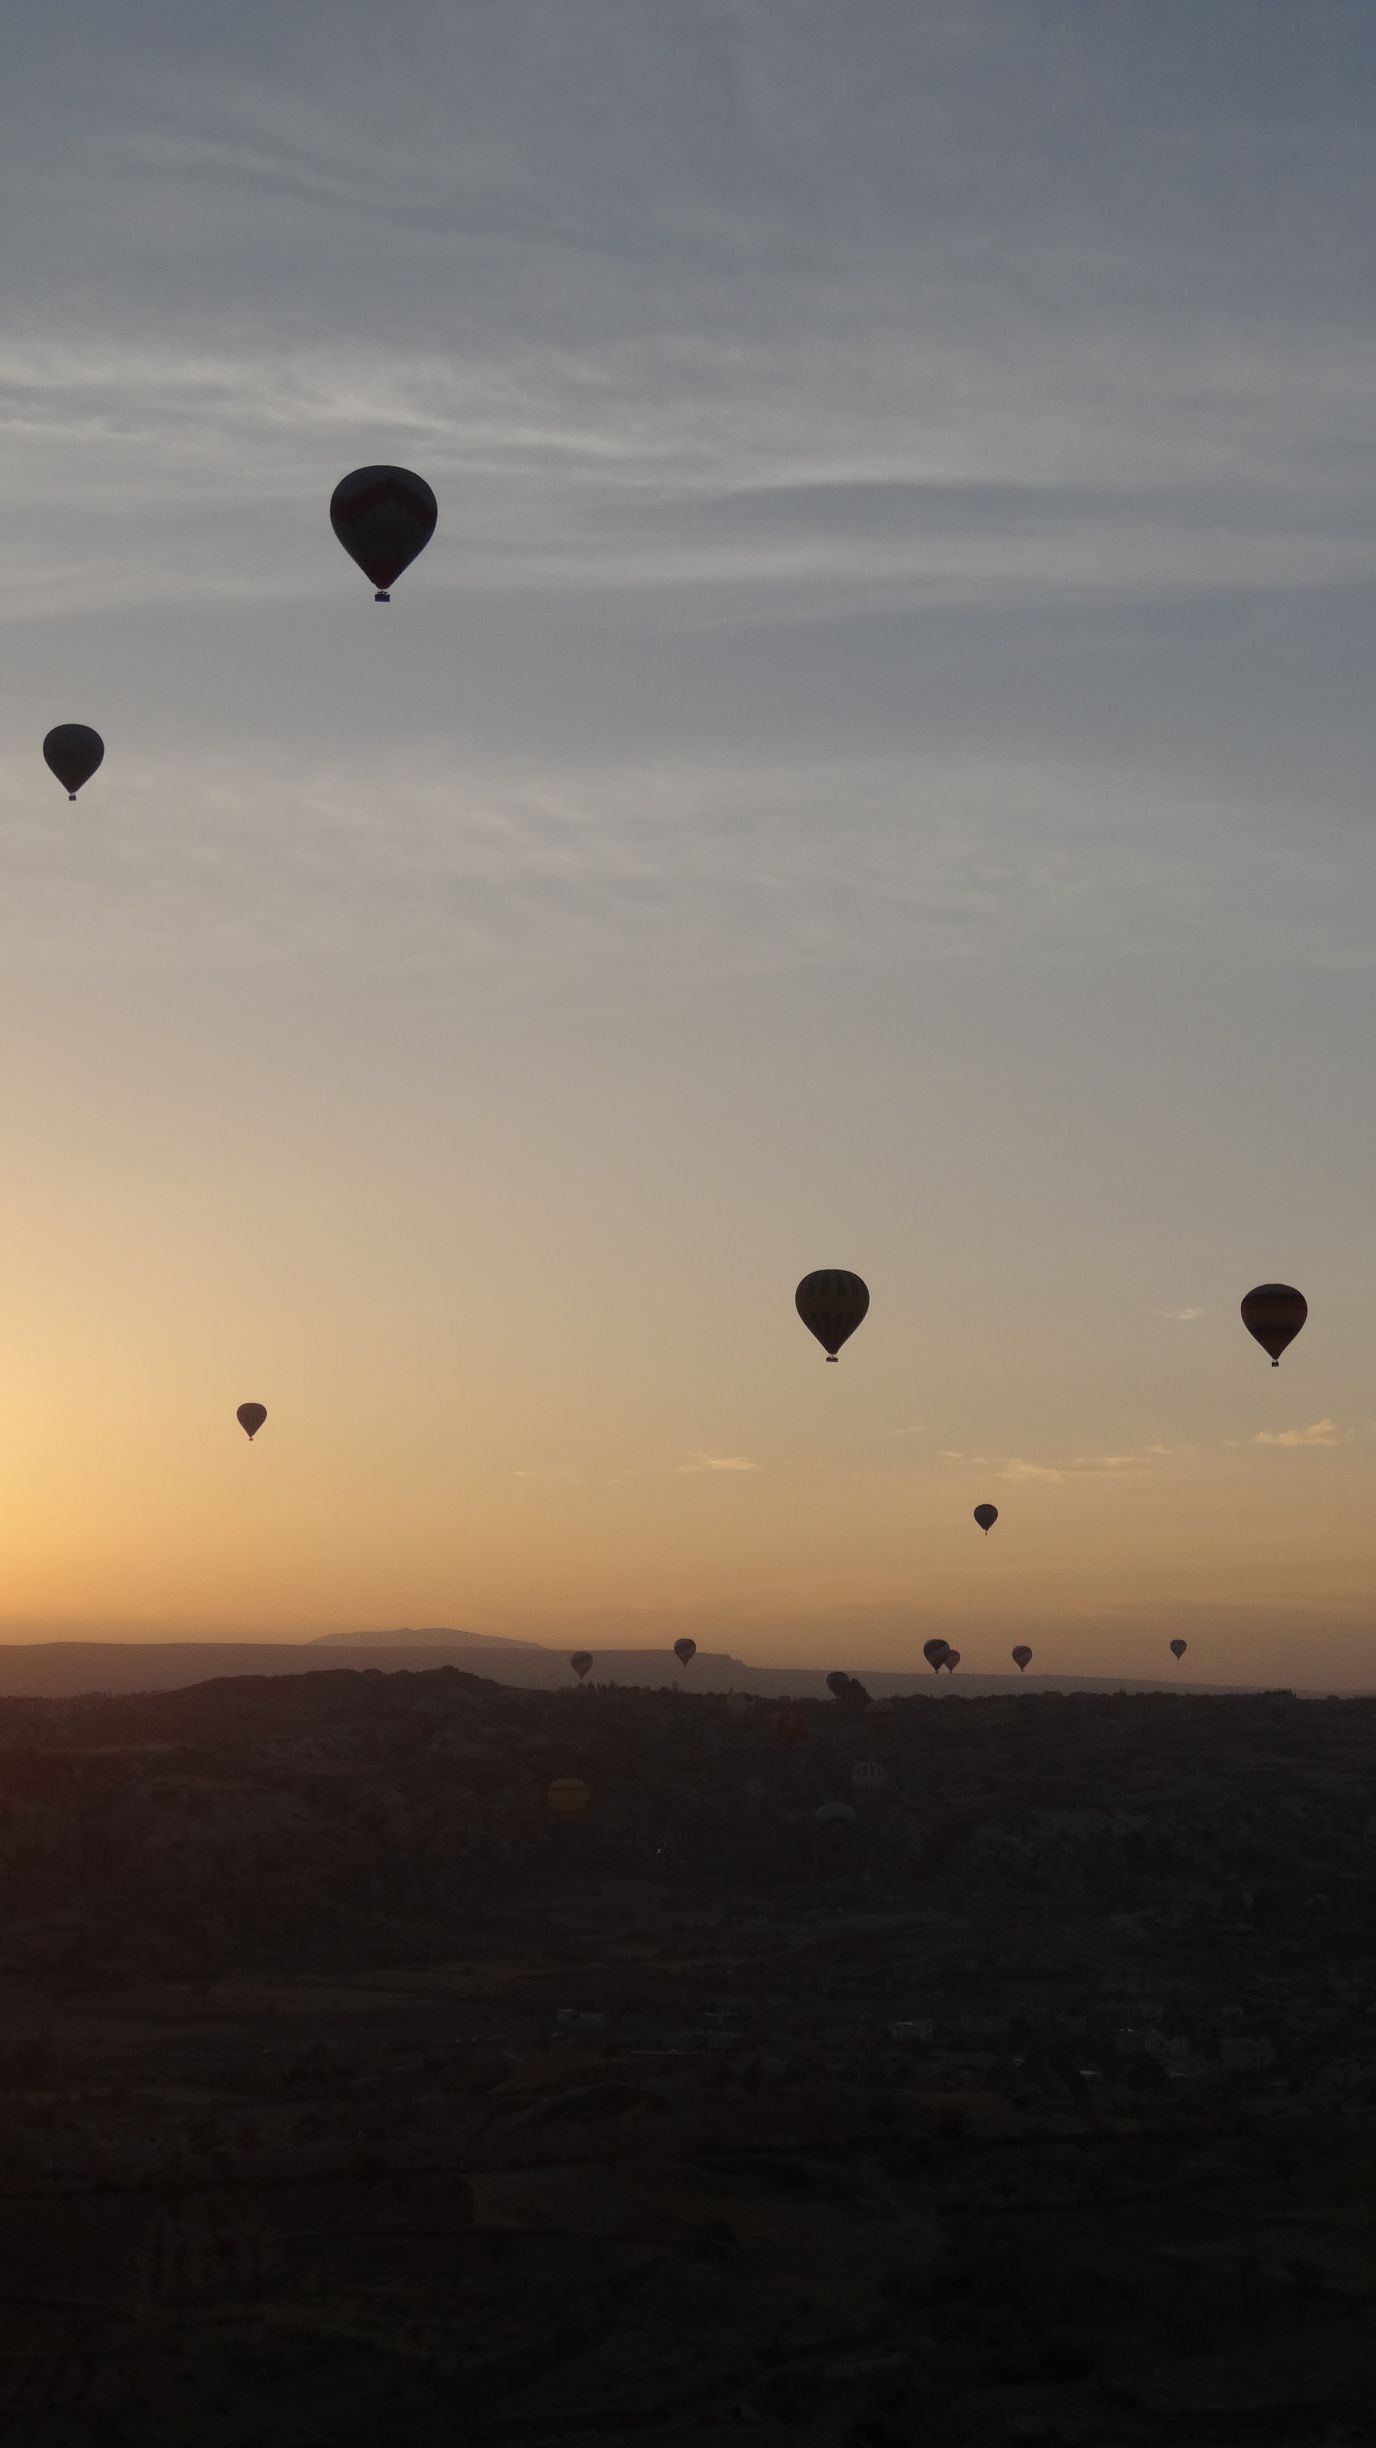 Cappadocia - best spot in the world for a hot air balloon flight